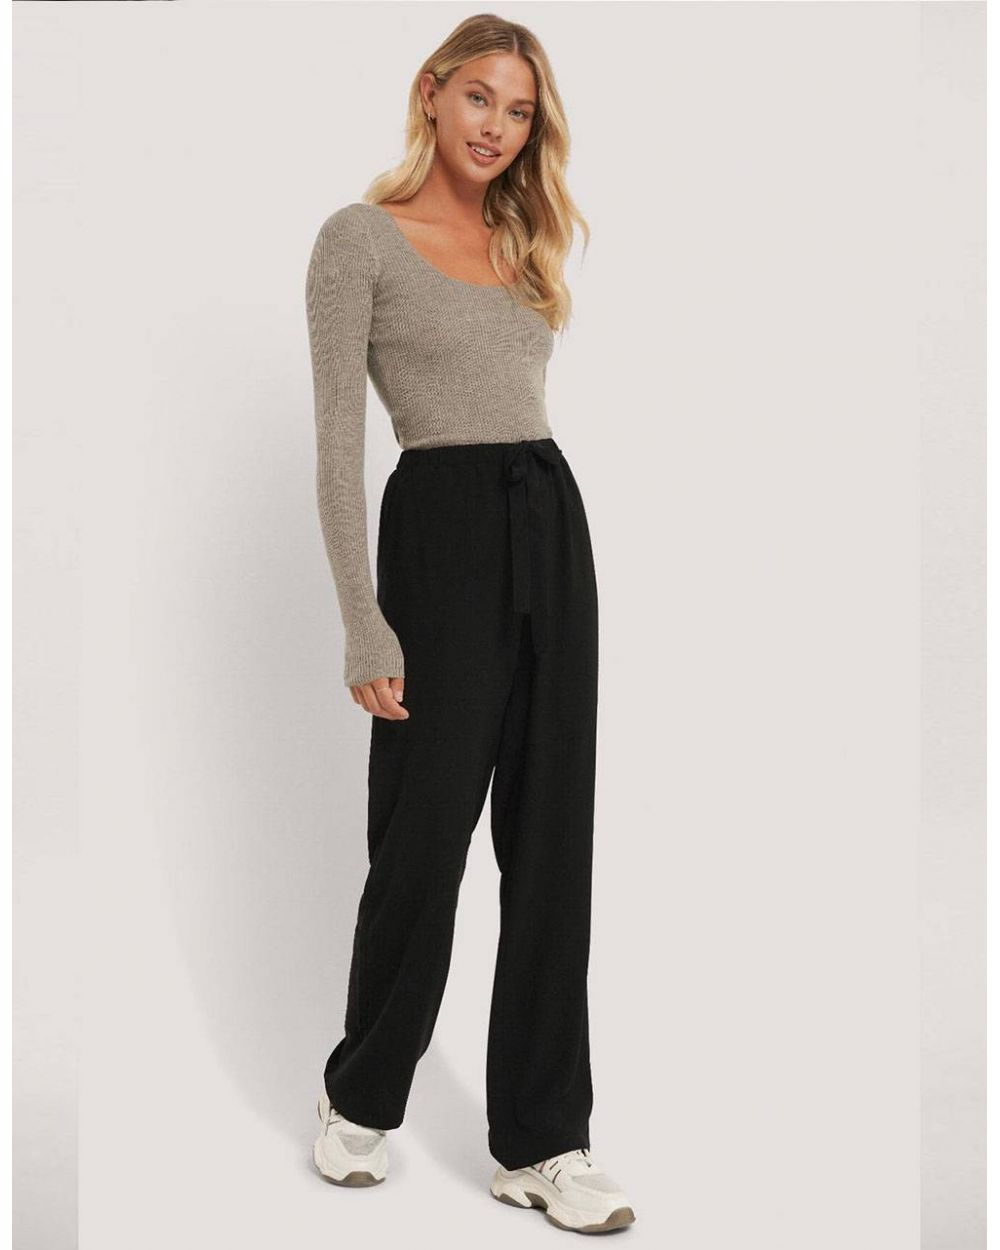 NA-KD tie belt wide leg pants - black NA-KD Pants 49,00 €